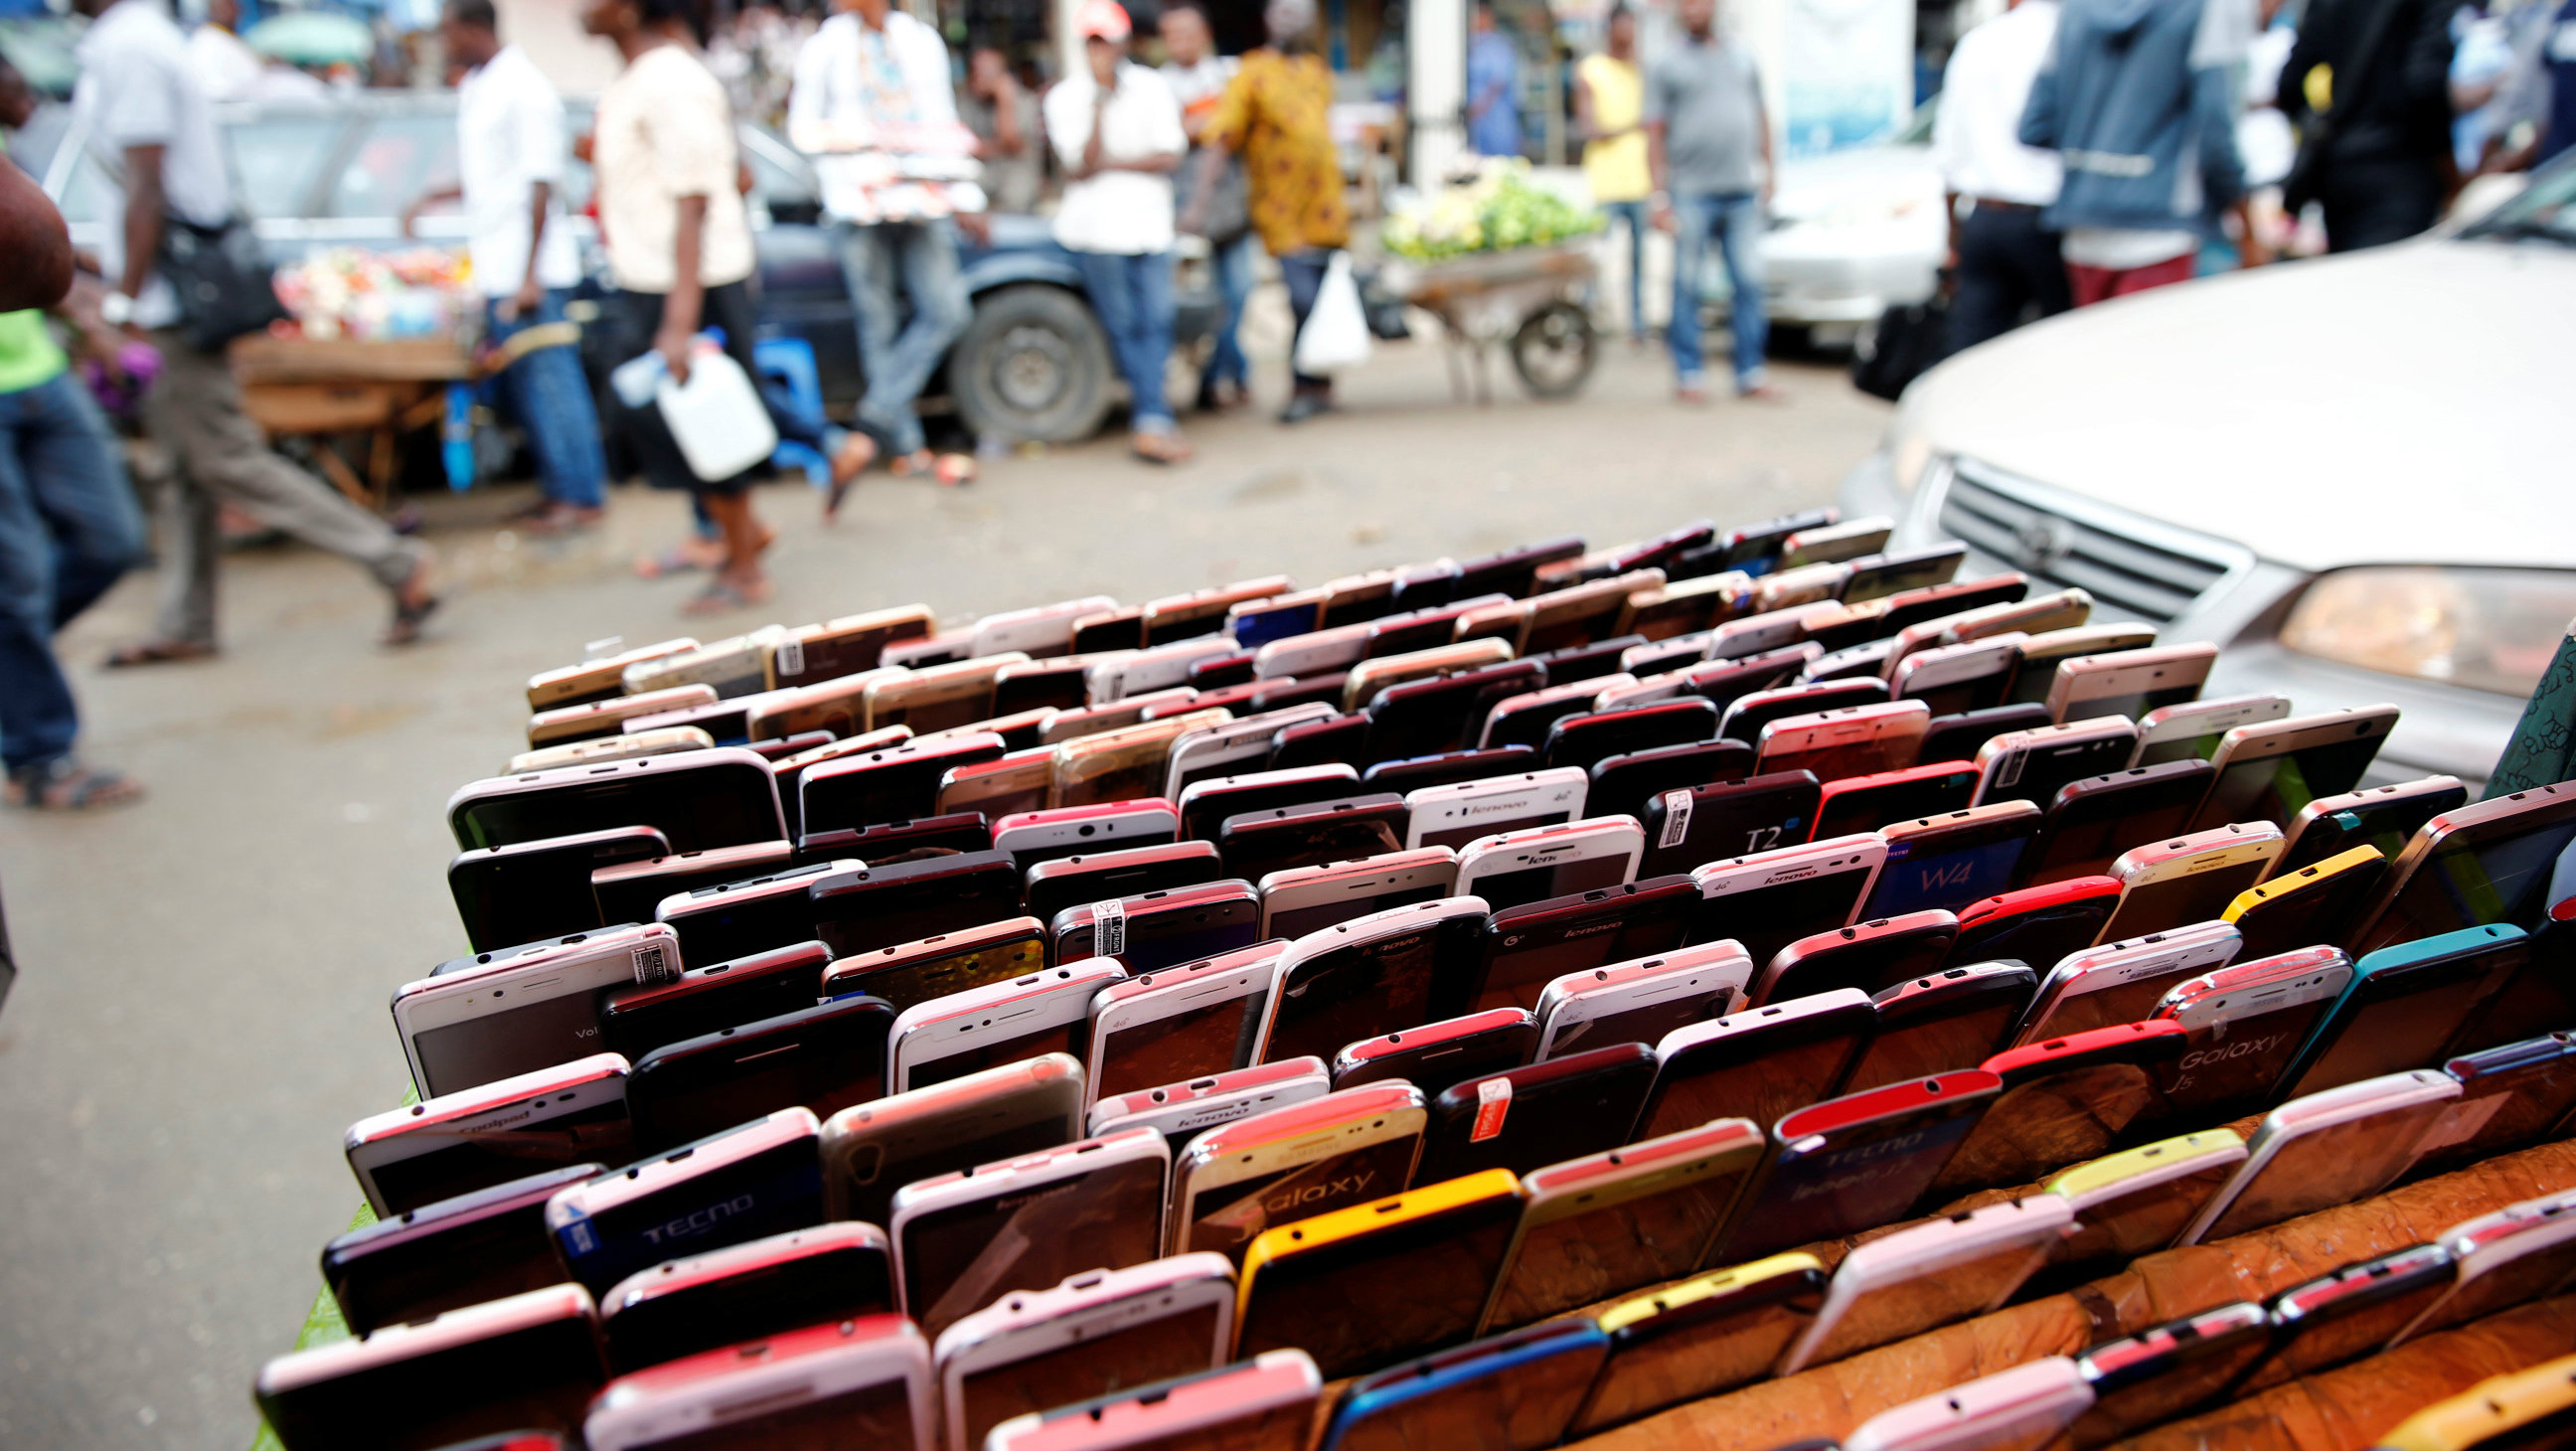 Smartphones are displayed for sale at the 'Computer Village' in Ikeja district in Nigeria's commercial capital Lagos, Nigeria May 31, 2017.